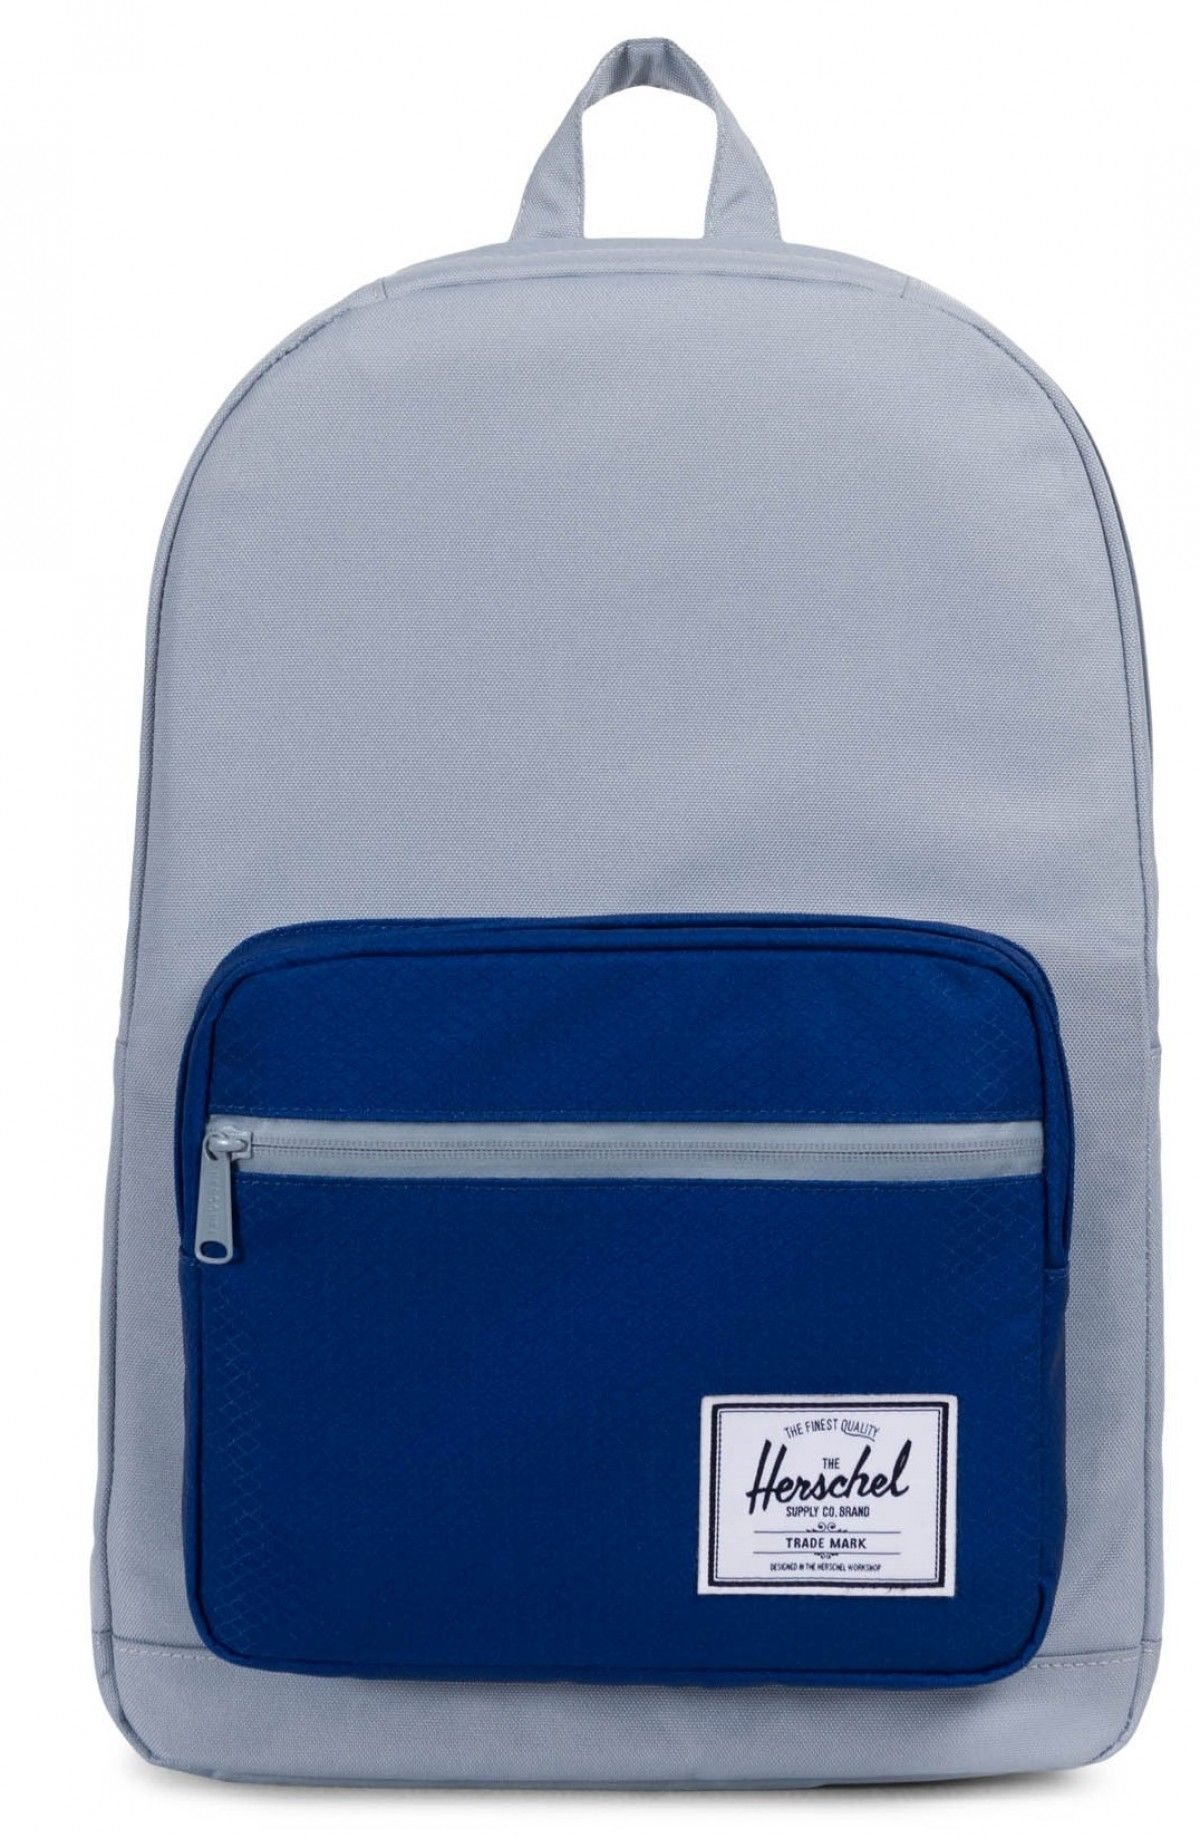 861d6b22921 Herschel Pop Quiz Backpack 600D Poly Quarry/Blueprint | Herschel ...